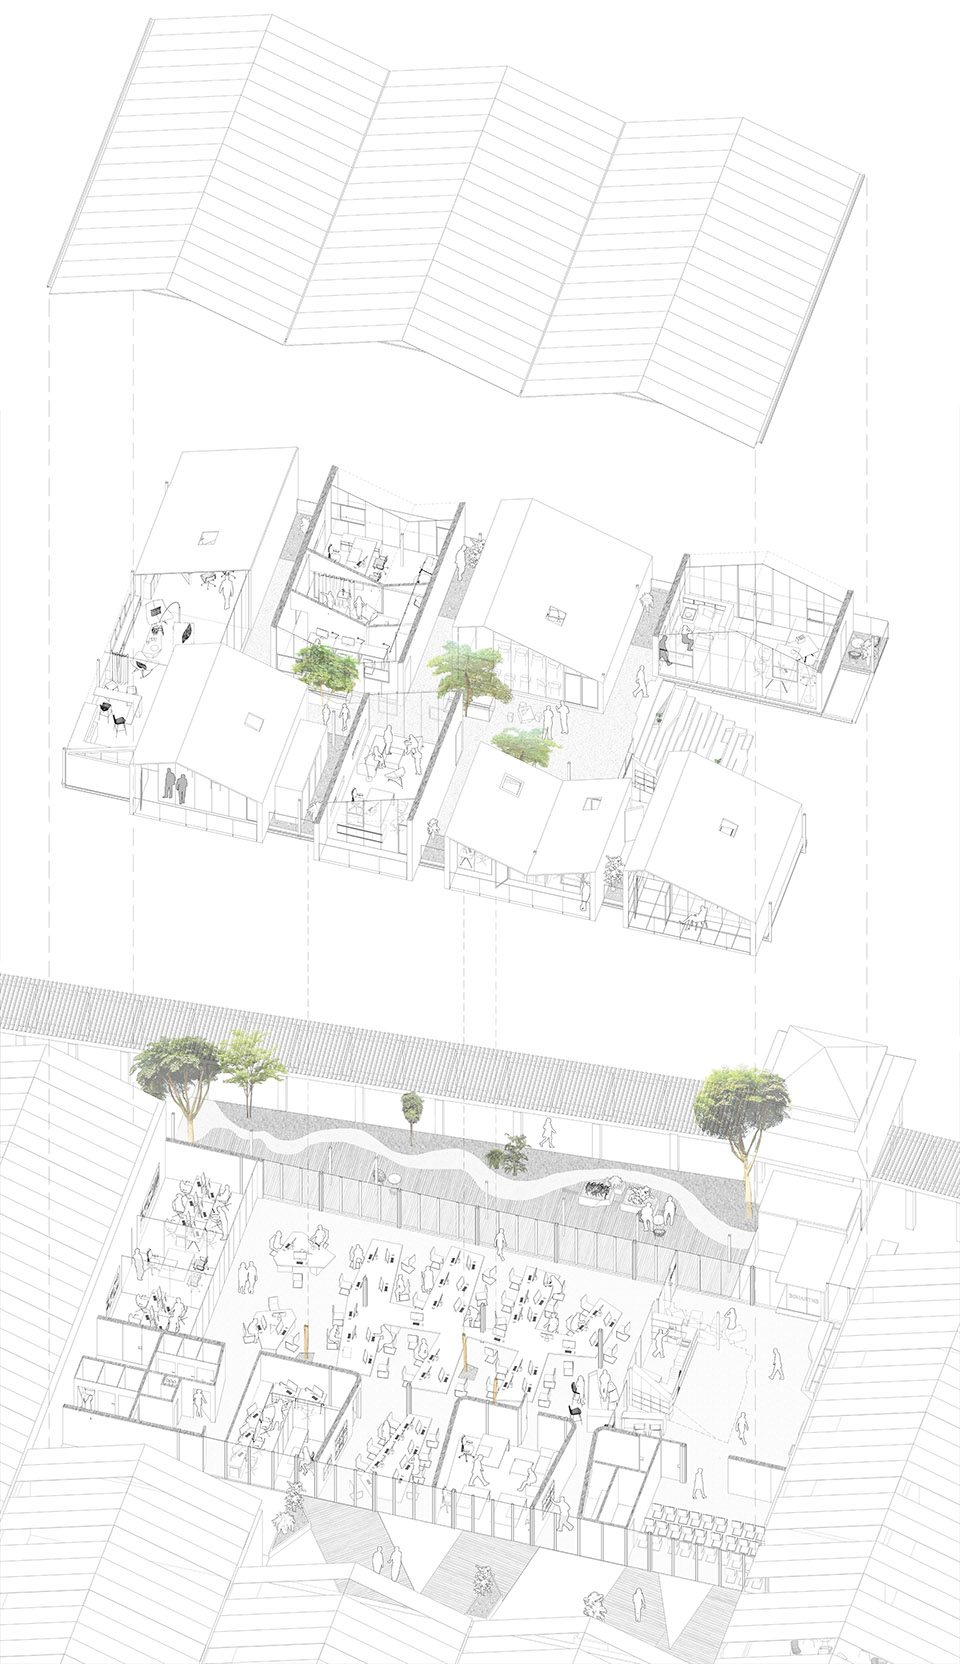 019-Work-studio-in-a-Plant-house-By-O-office-Architects-960x1664